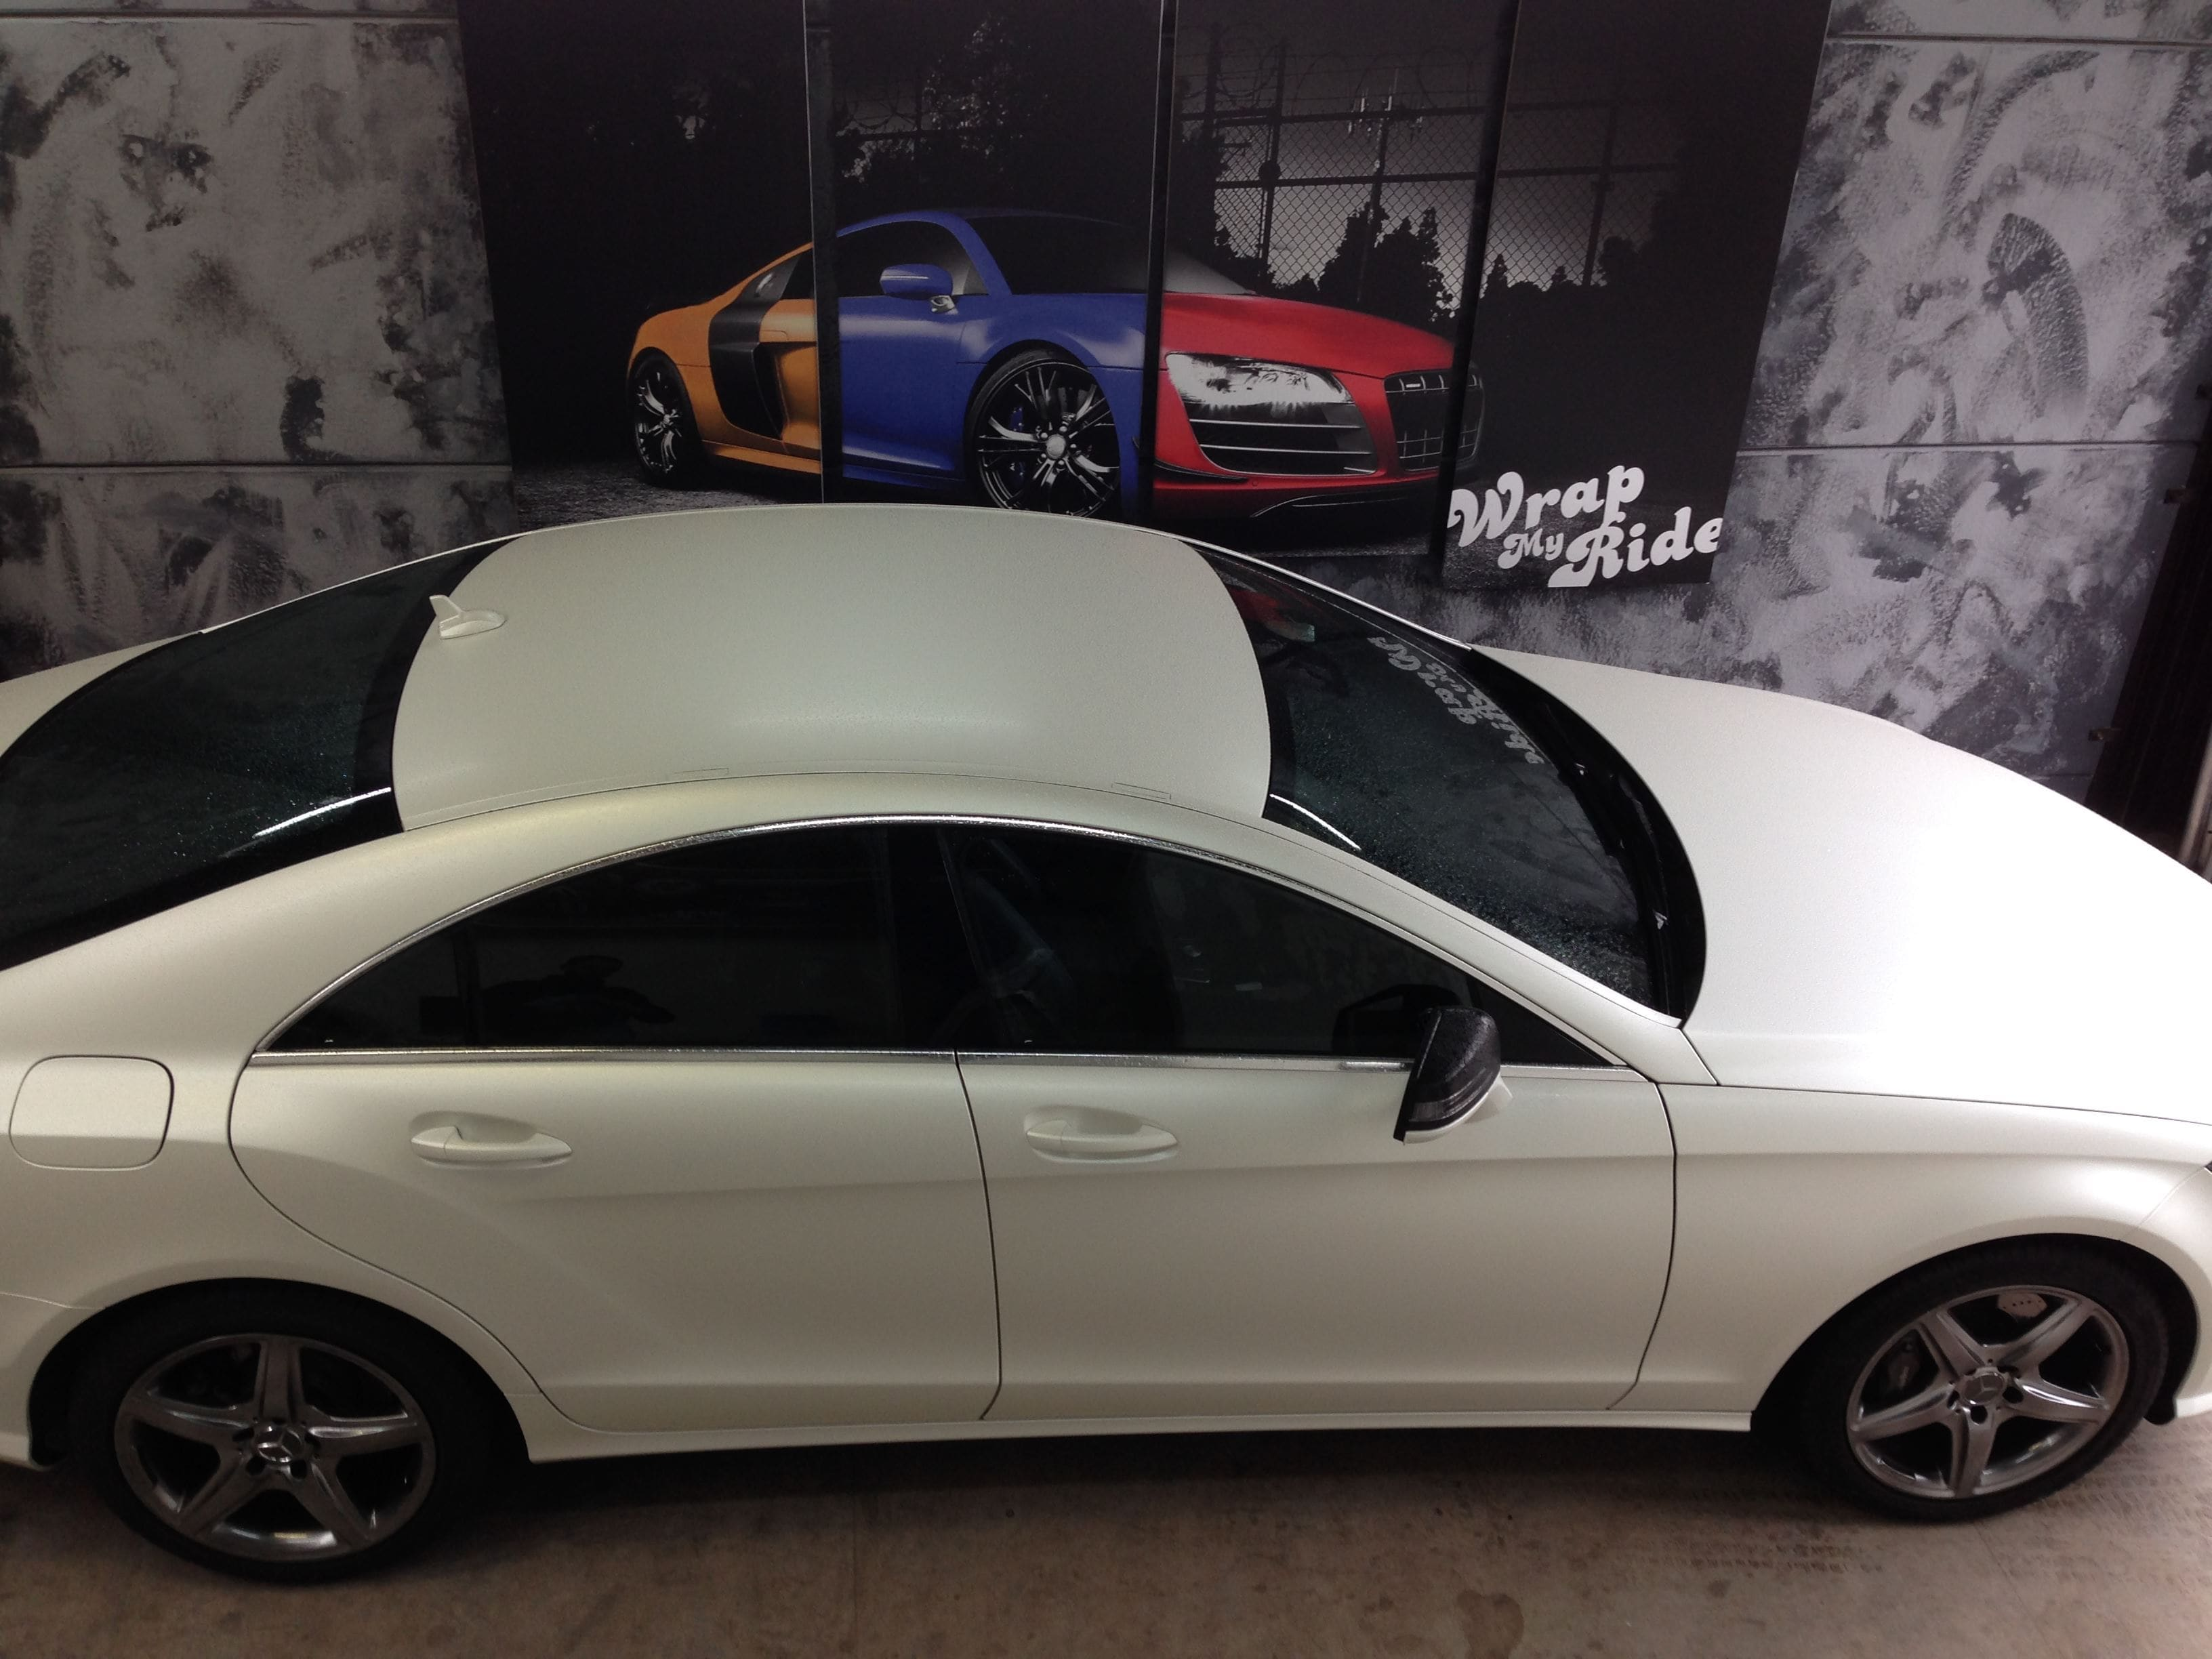 Mercedes CLS met White Satin Pearl Wrap, Carwrapping door Wrapmyride.nu Foto-nr:6219, ©2020